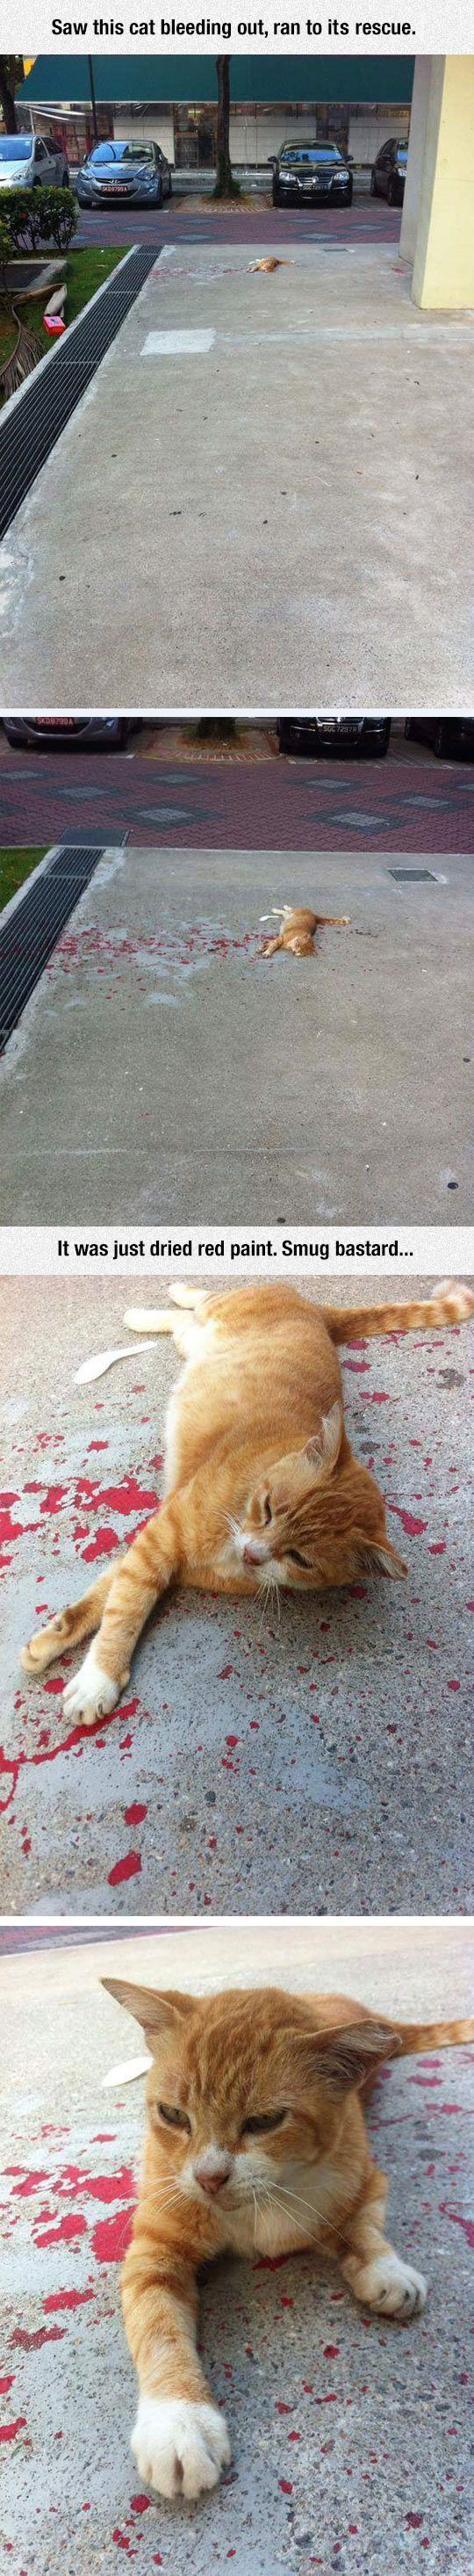 I honestly thought that the cat was dying